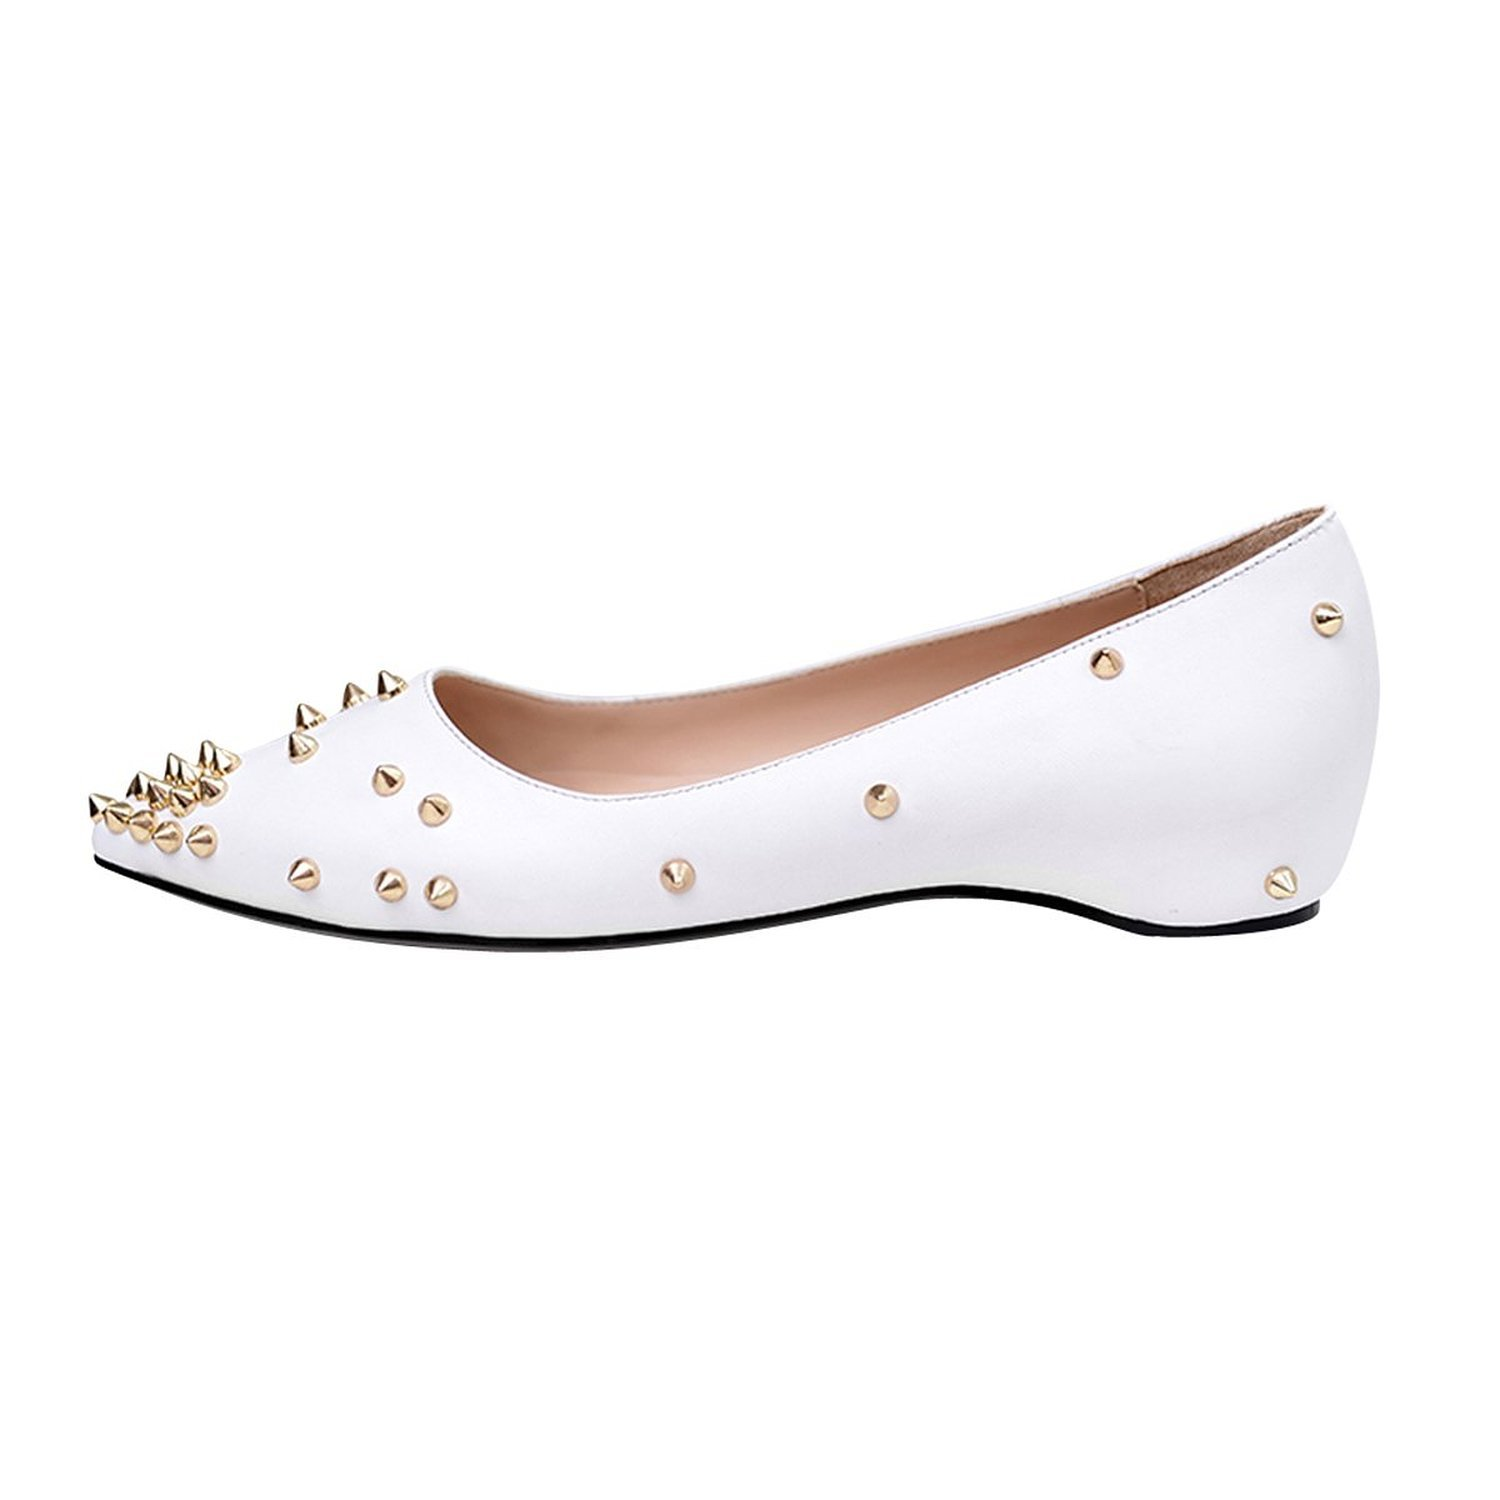 Mermaid Women's Shoes Pointed Toe Spiked Rivets Comfortable Flats B071R7ZNW8 US11 Feet length 10.56